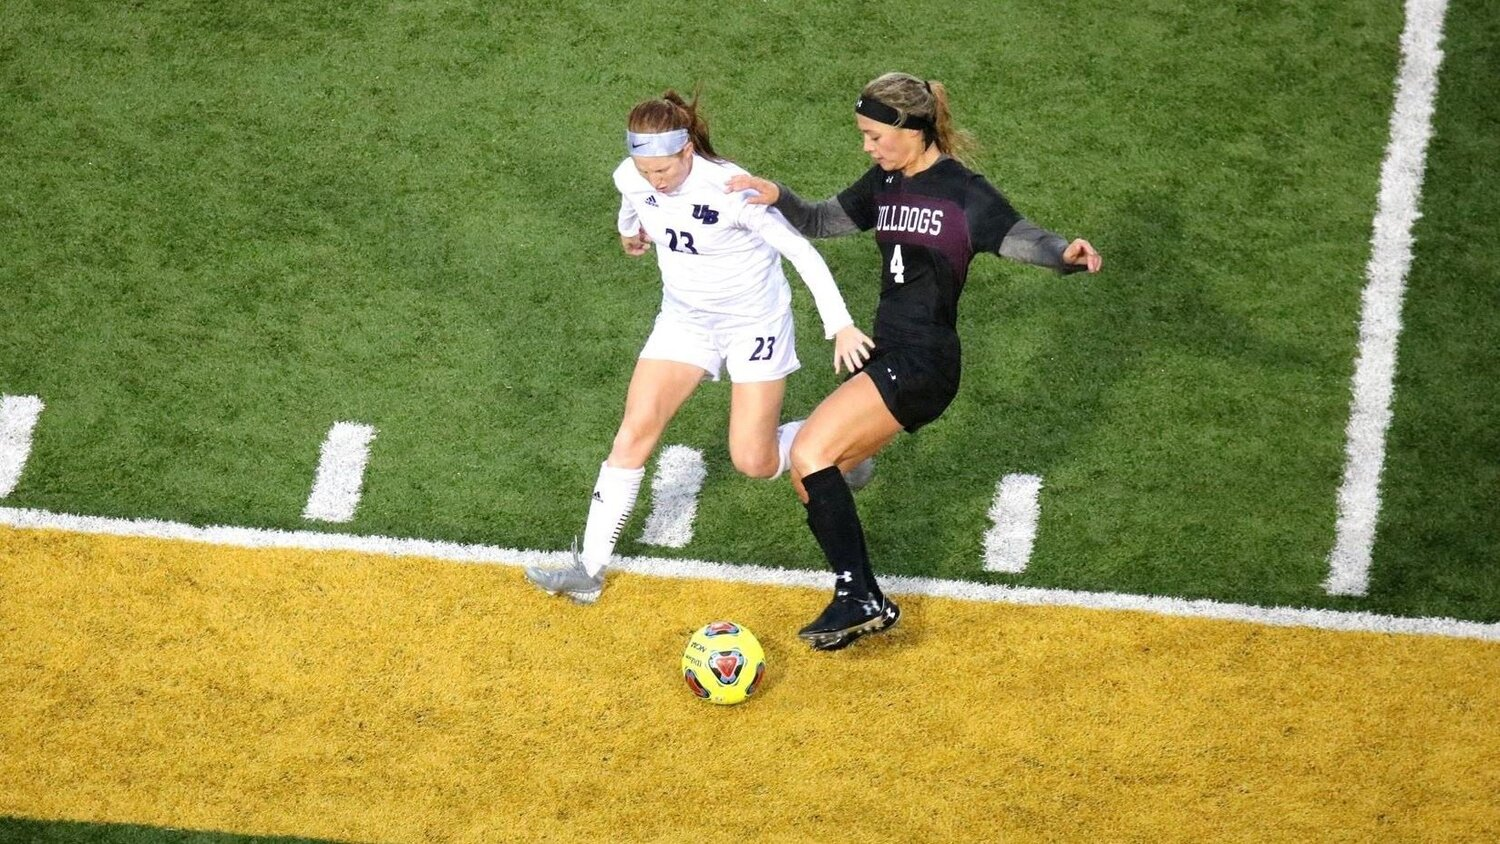 UMD sophomore forward Haley Ford battles Bridgeport midfielder Abigail Befford for the ball in Thursday night's match. The Bulldogs would end up winning 3-2. (Photo courtesy of Drew Smith/UMD Athletics)